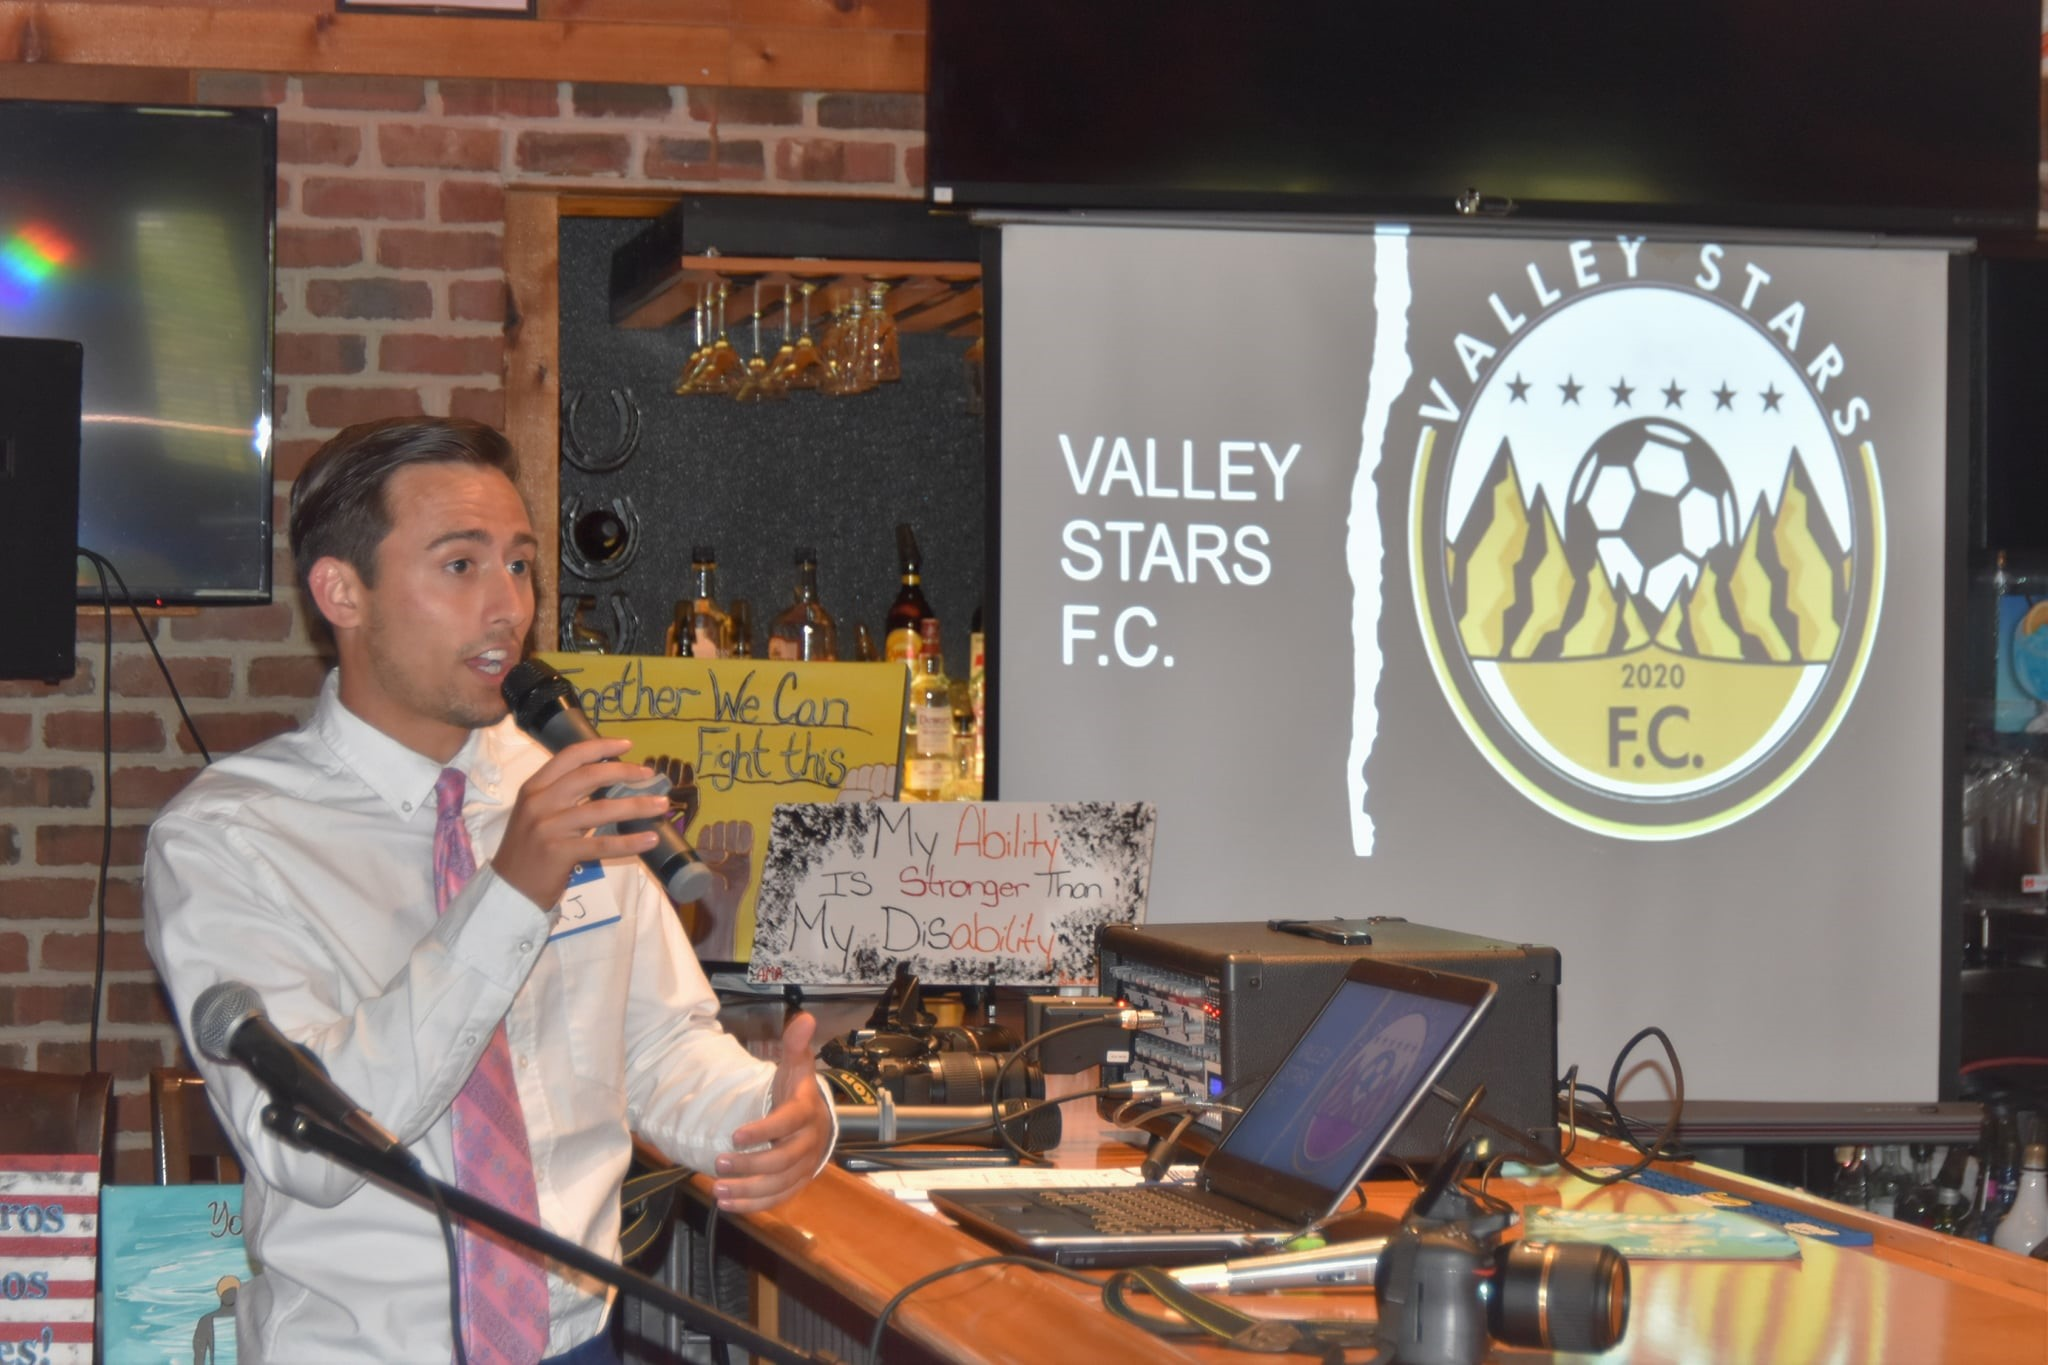 Event: Lehigh Valley Elite Network Business Networking Event at Texas Roadhouse - Jun 24 @ 11:00am